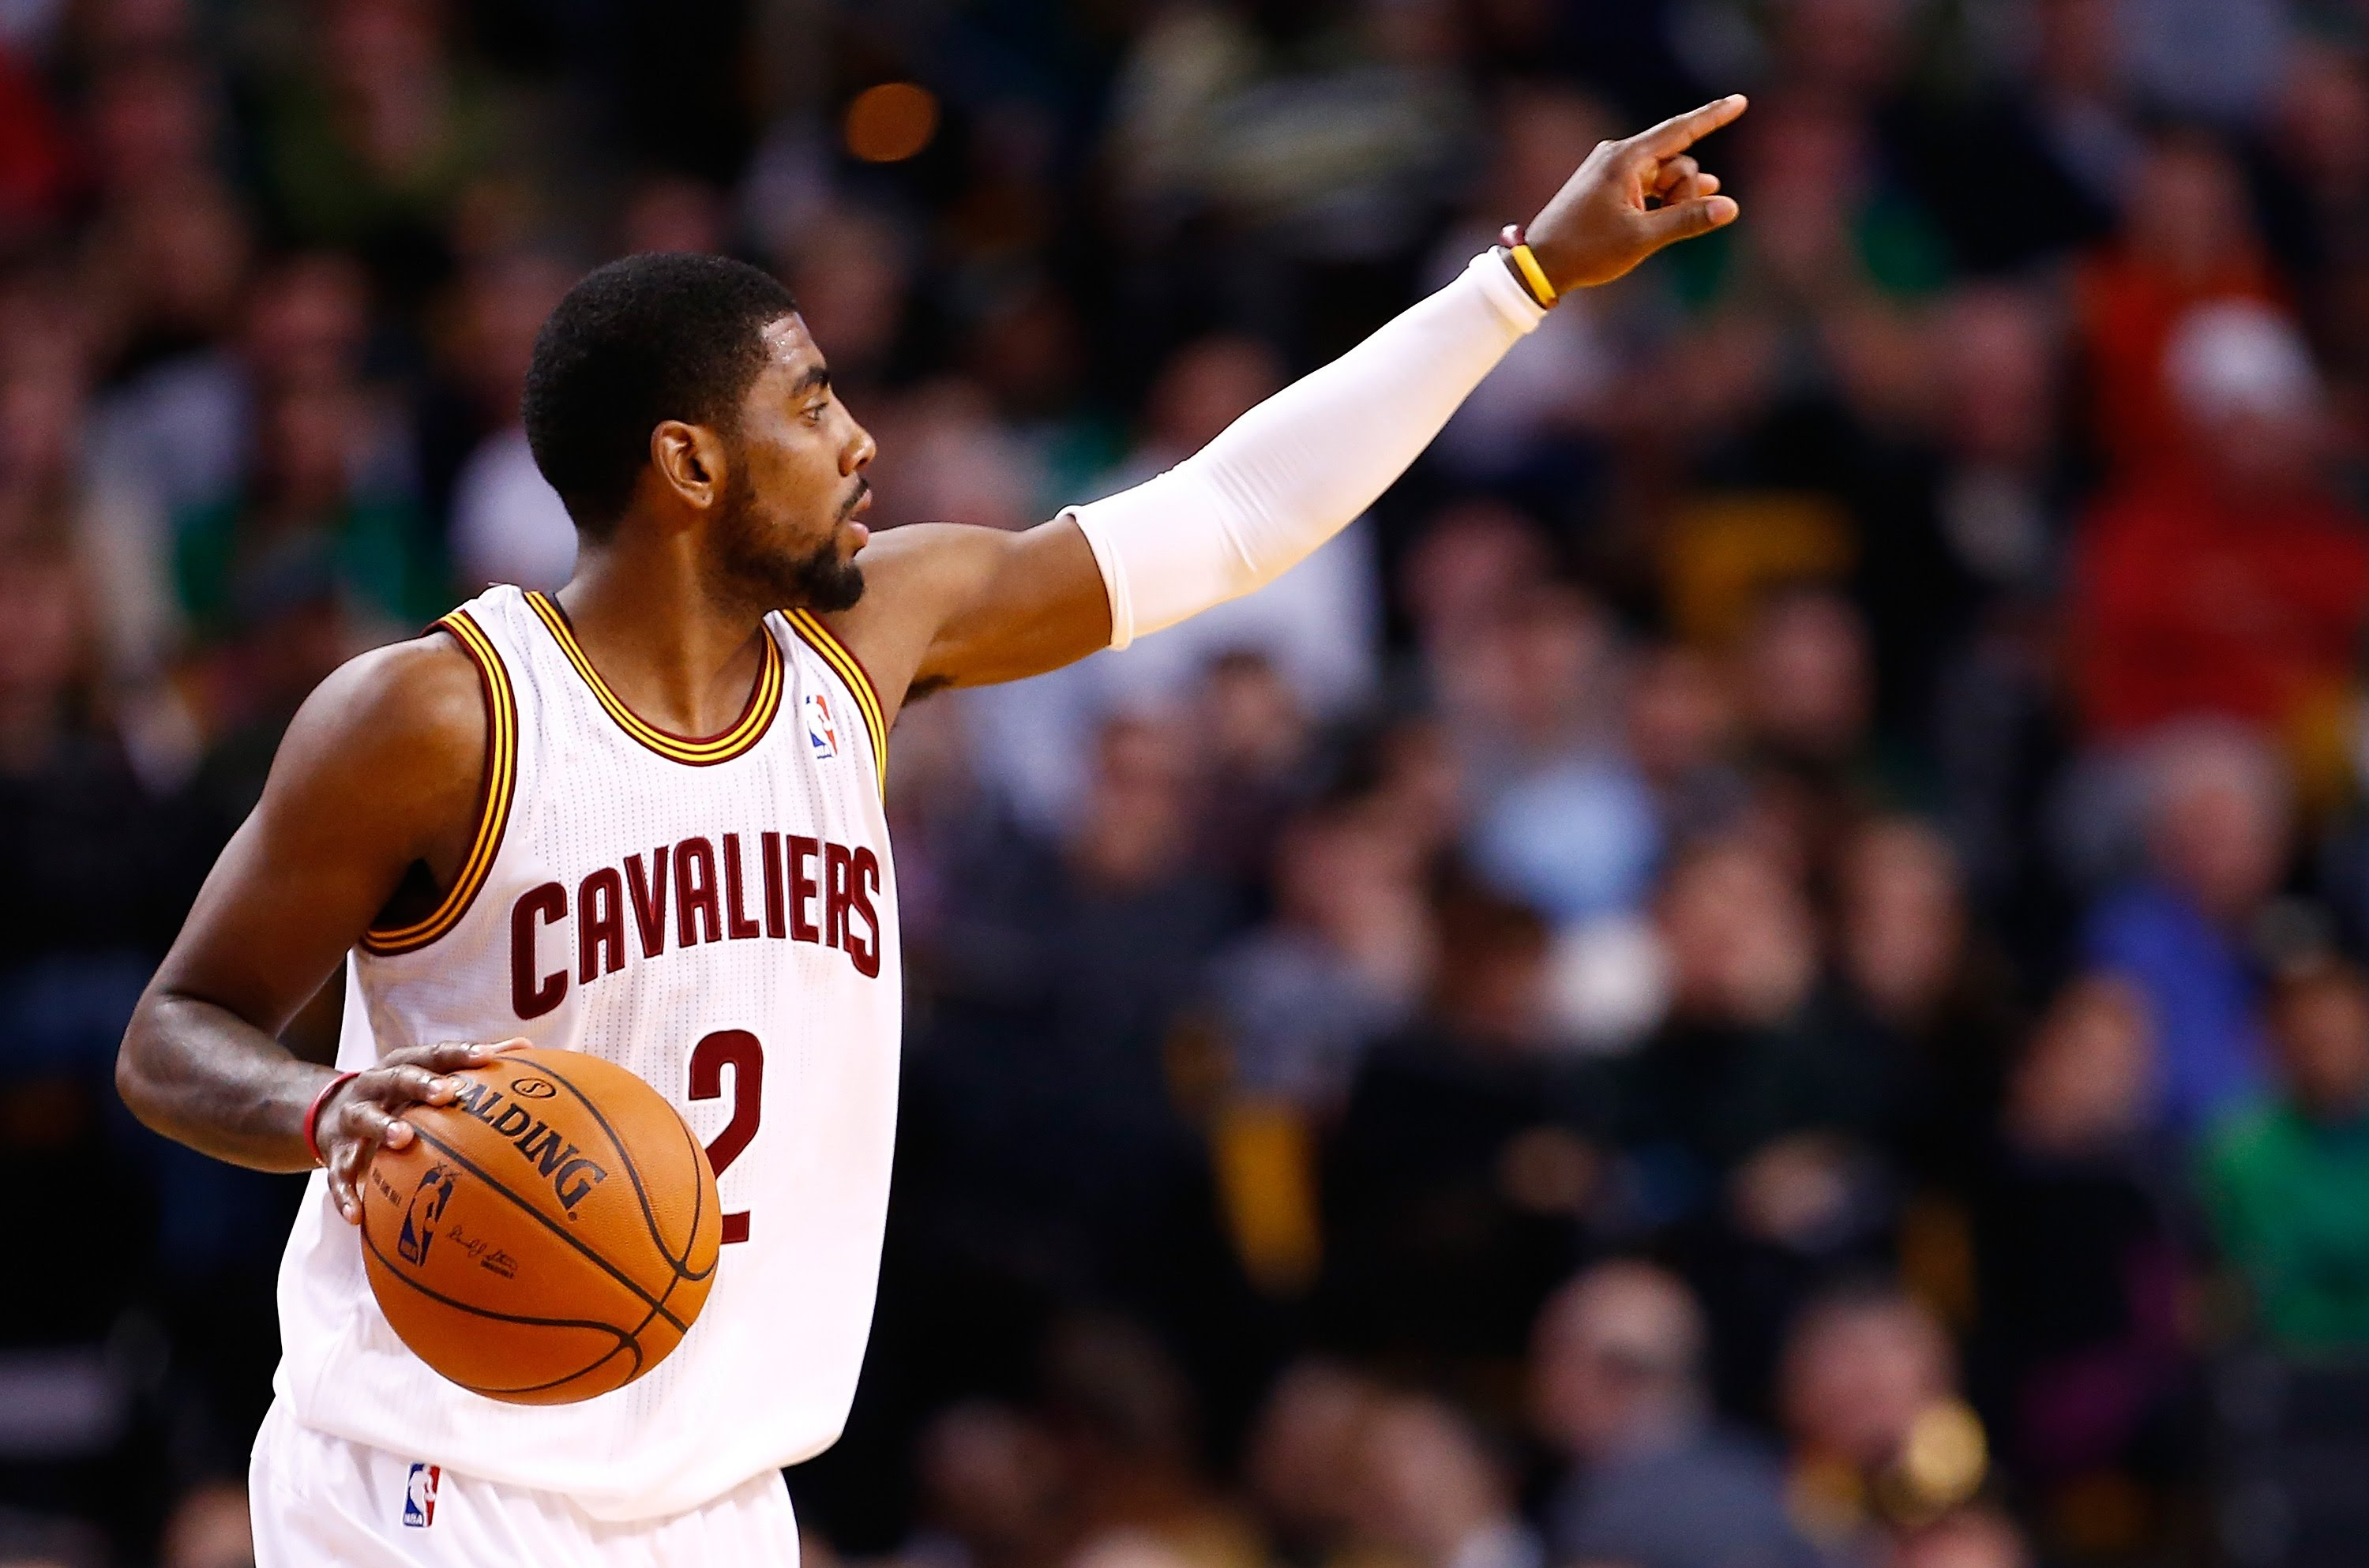 Watch Kyrie Irving Drop A Double Nickel Against The